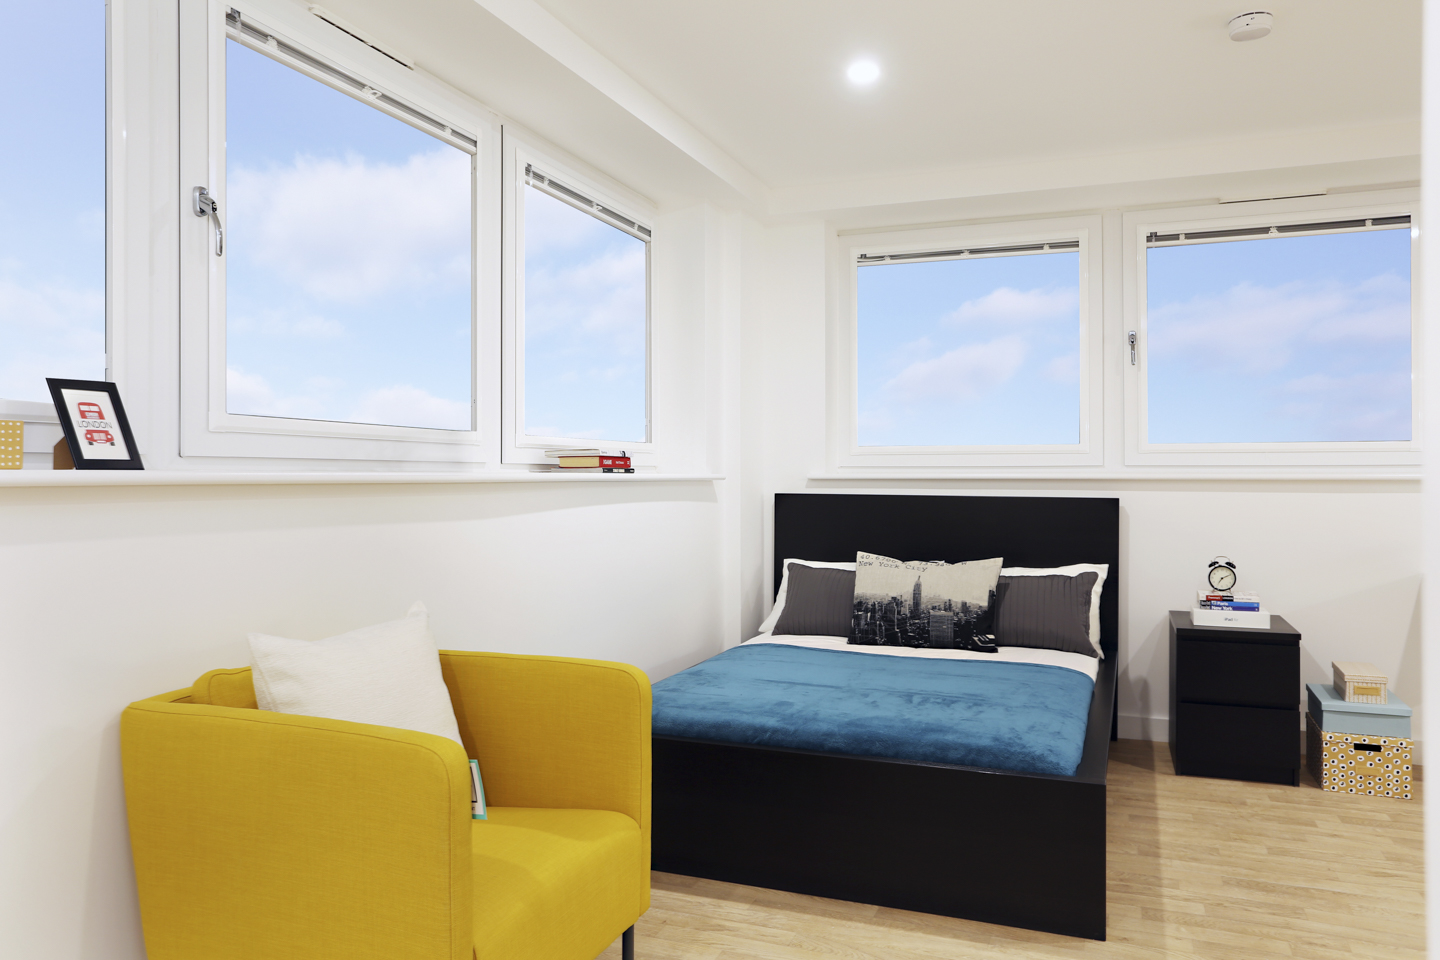 Urban Student Life High Quality Student Accommodation